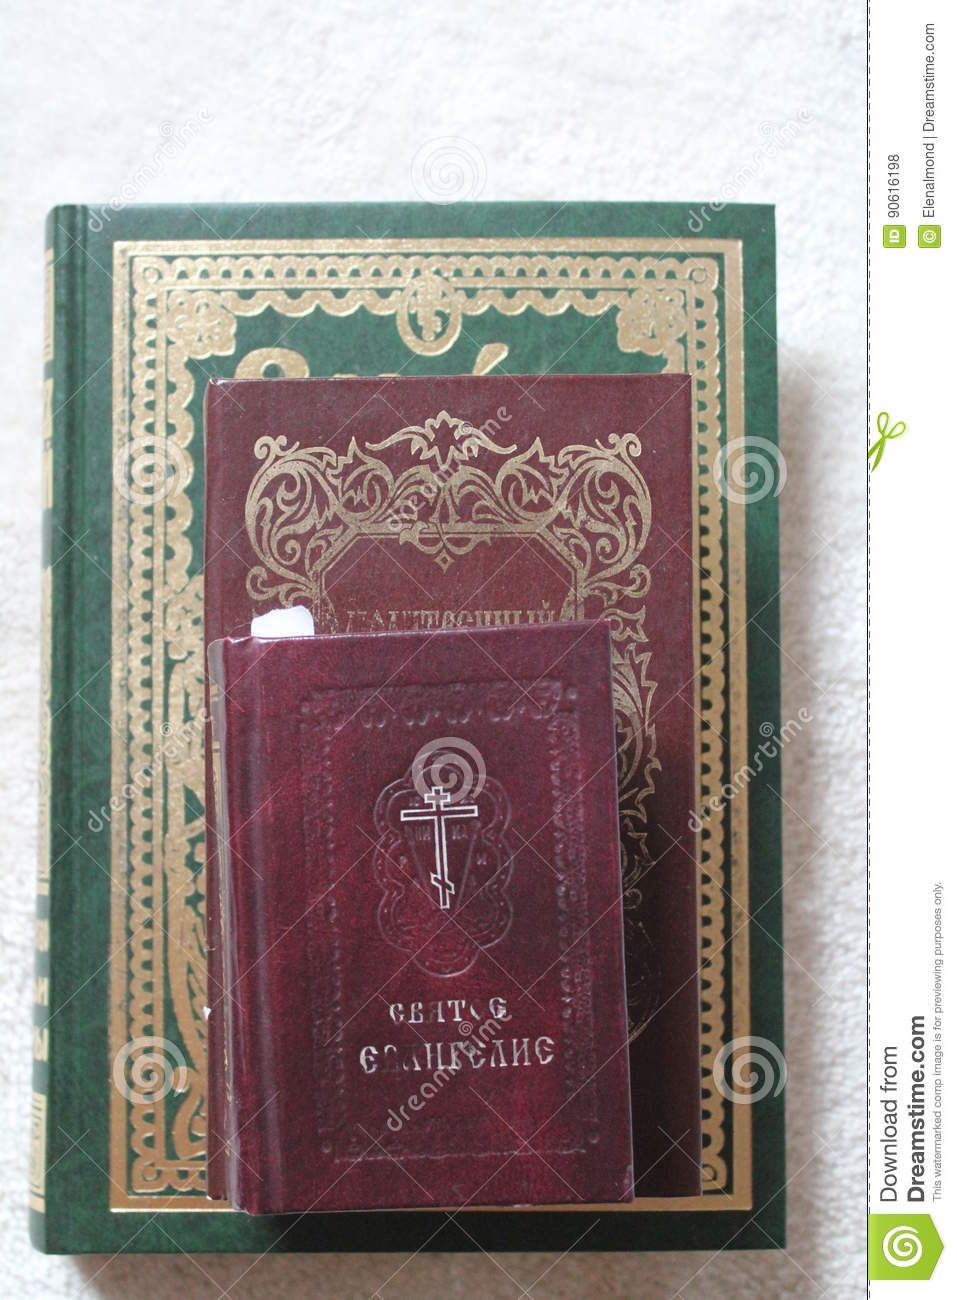 Holy books stock photo  Image of book, books, knowledge - 90616198